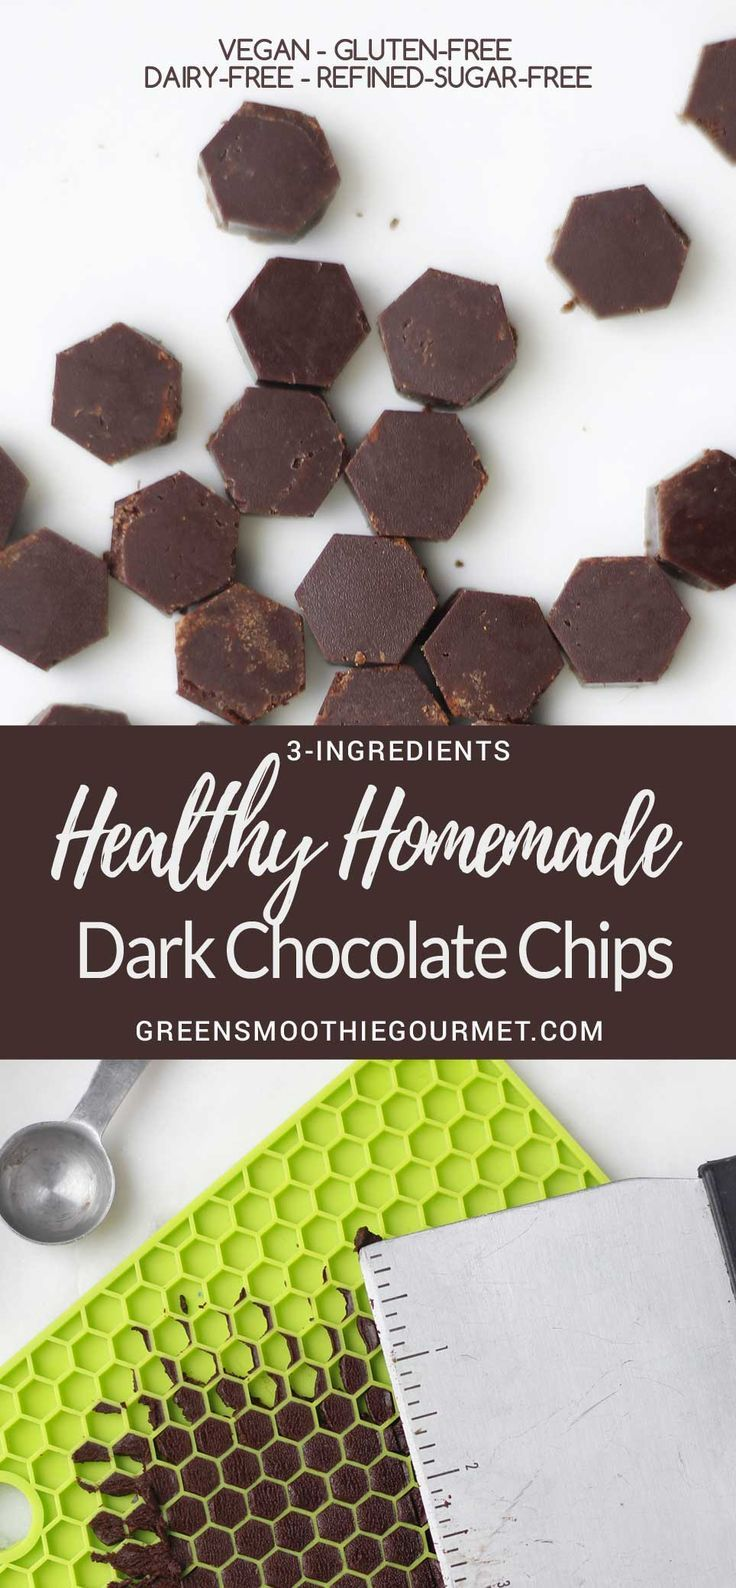 Homemade Dark Chocolate Chips Only 3-ingredients, super healthy, and molded with a kitchen potholder! #vegan #chocolatechips #glutenfree #dairyfree RECIPE: https://greensmoothiegourmet.com/homemade-dark-chocolate-chips-3-ingredients-vegan-glutenfree-paleo/